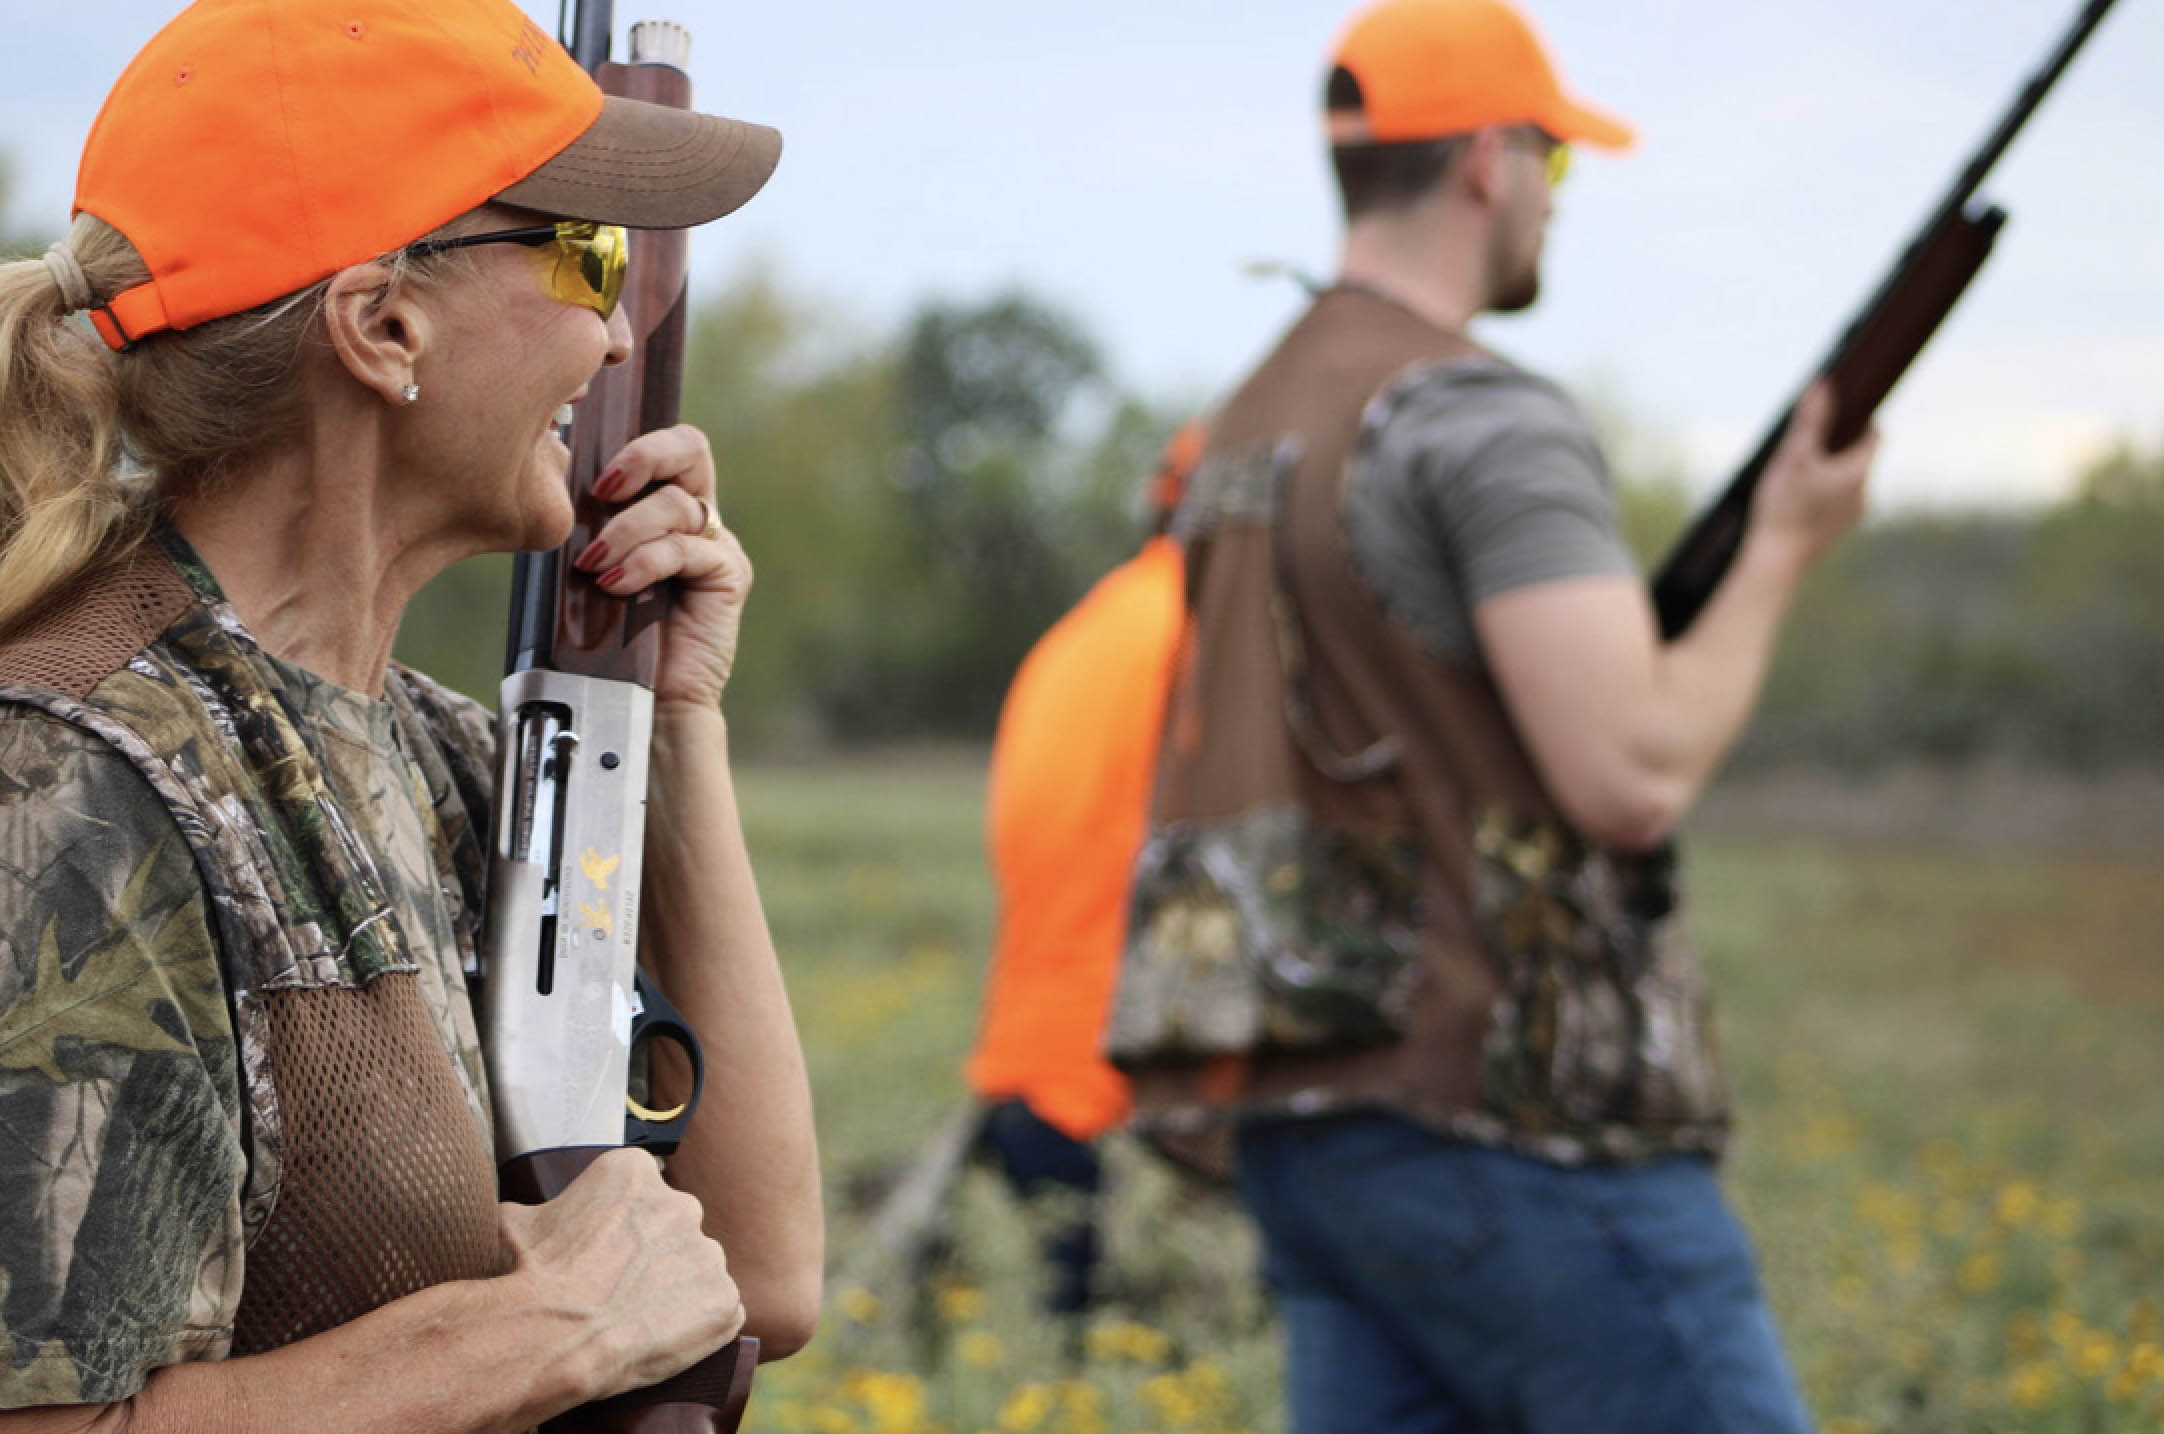 south Texas quail hunts and south Texas dove hunts, white wing dove hunts, south zone